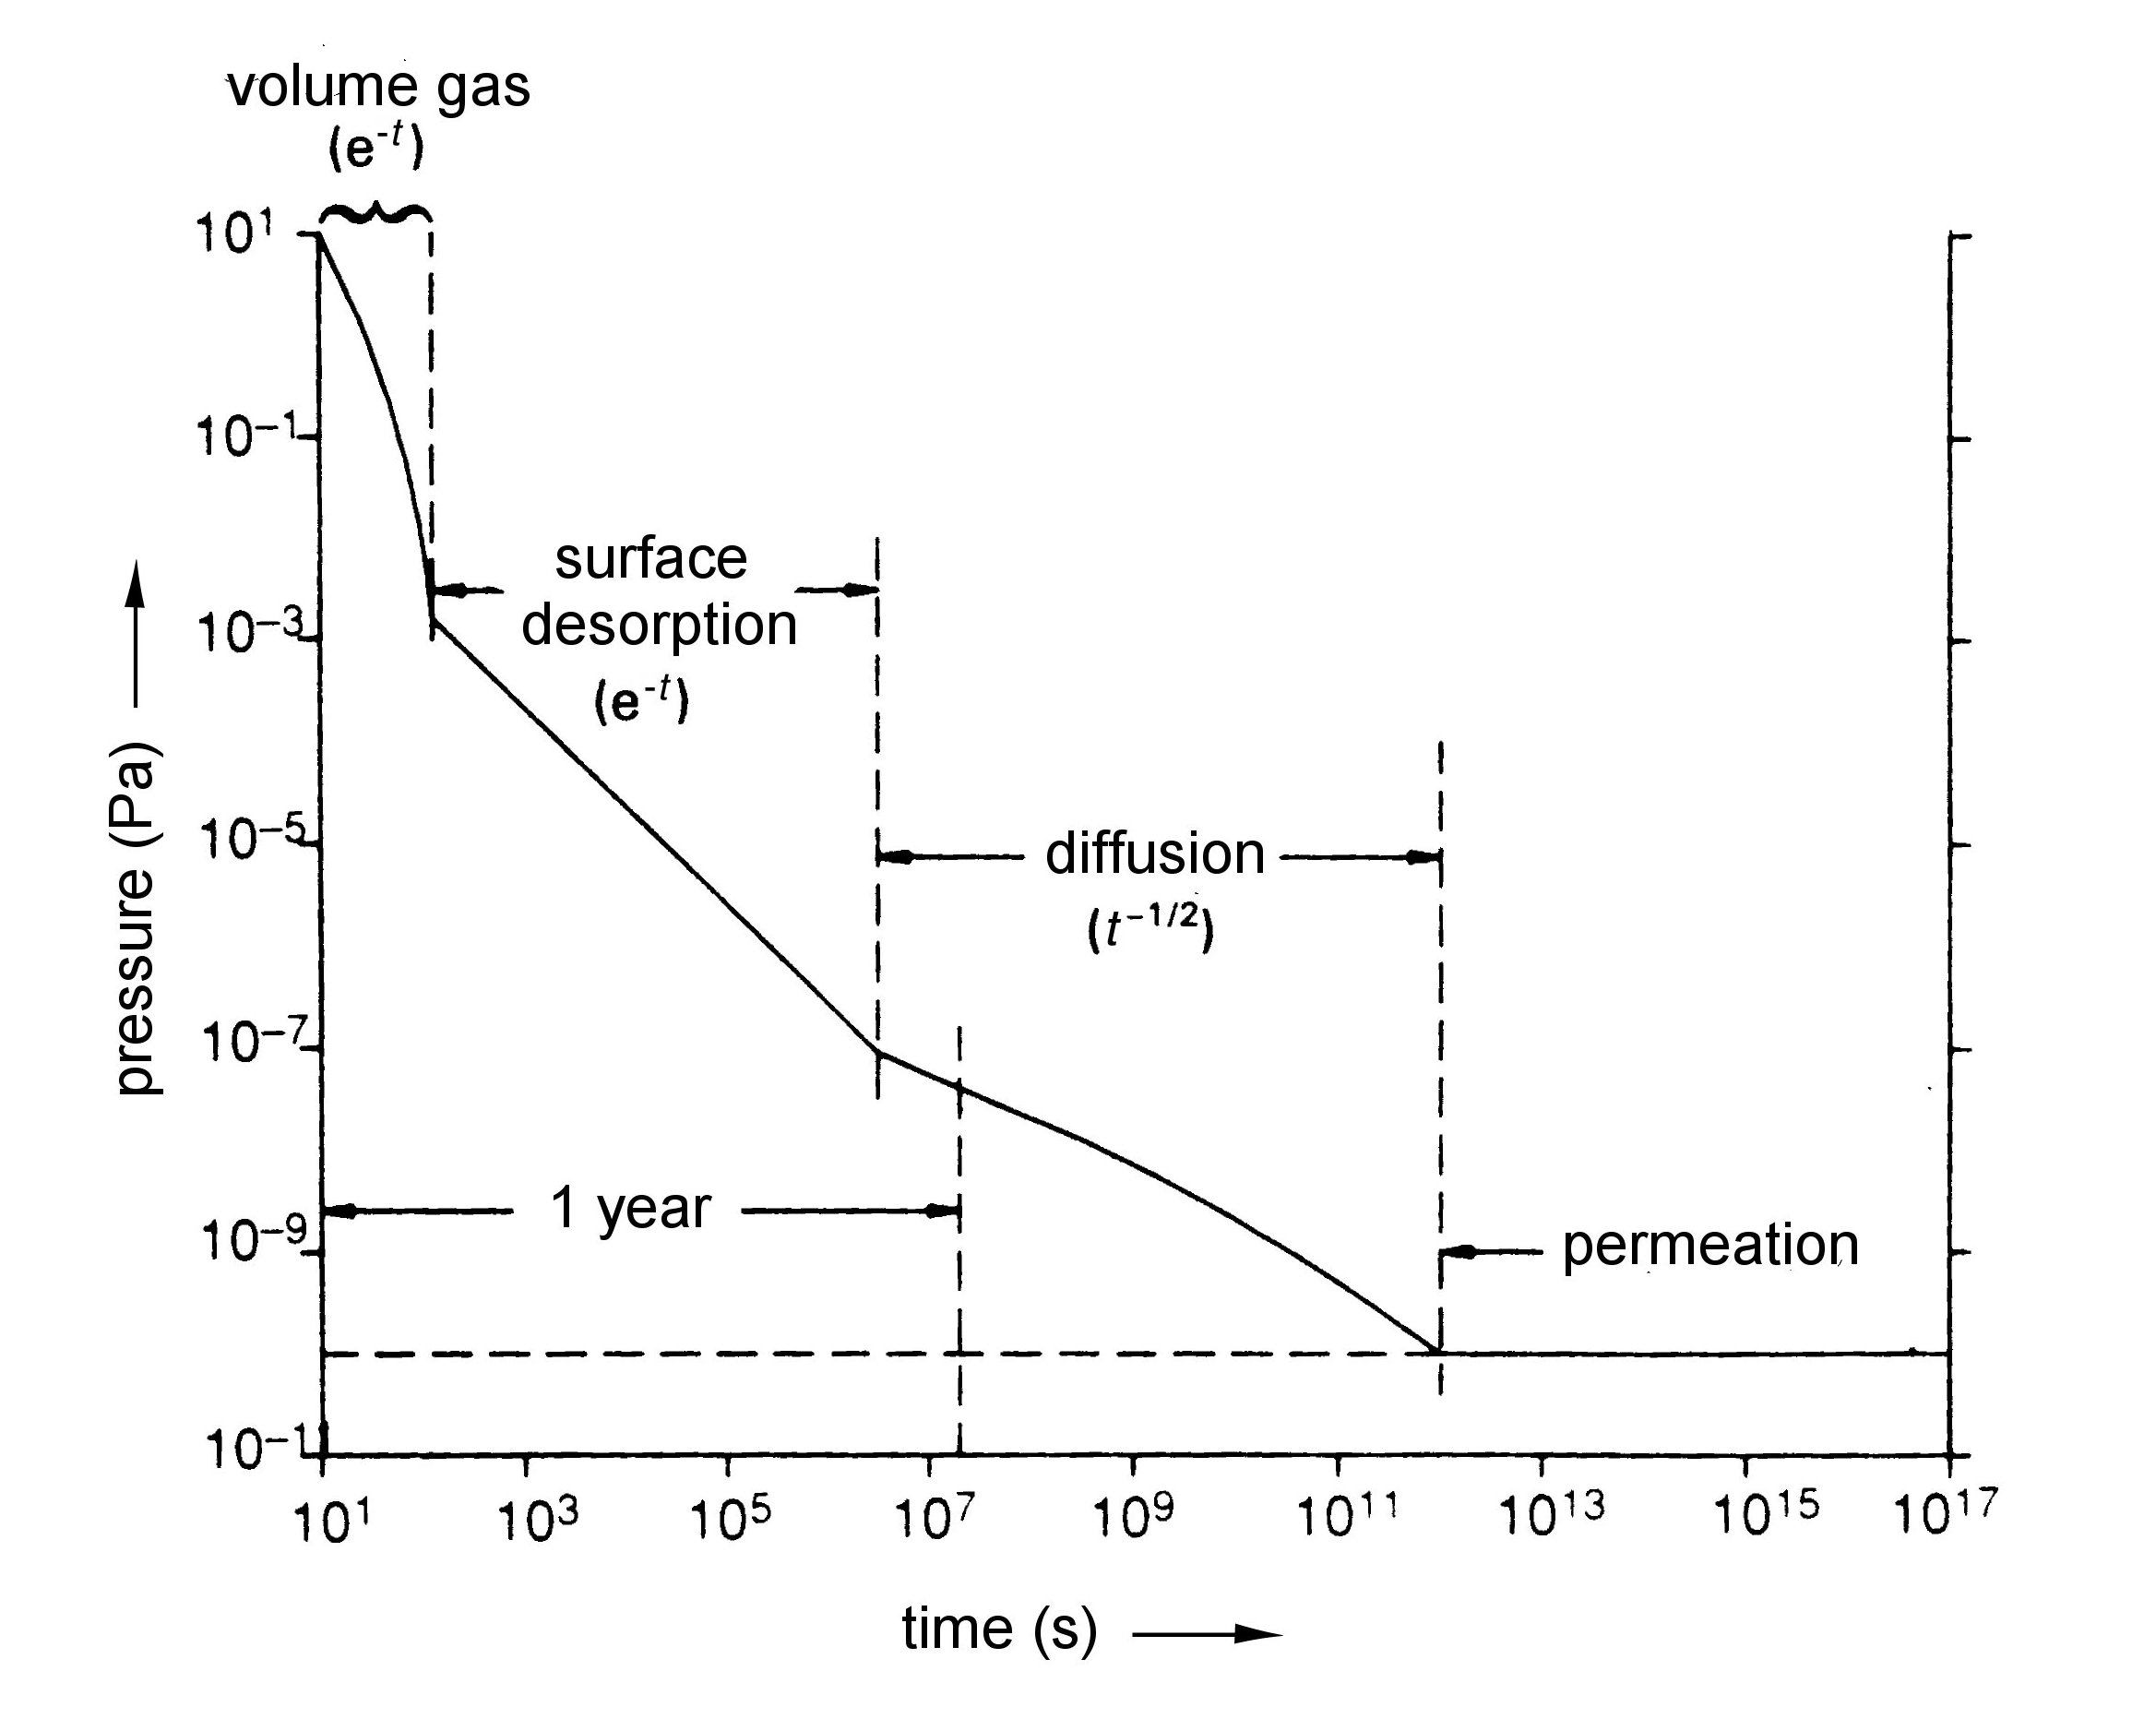 Gas-solid interaction - Schematic log-log curve of pressure vs time due to successive degassing processes